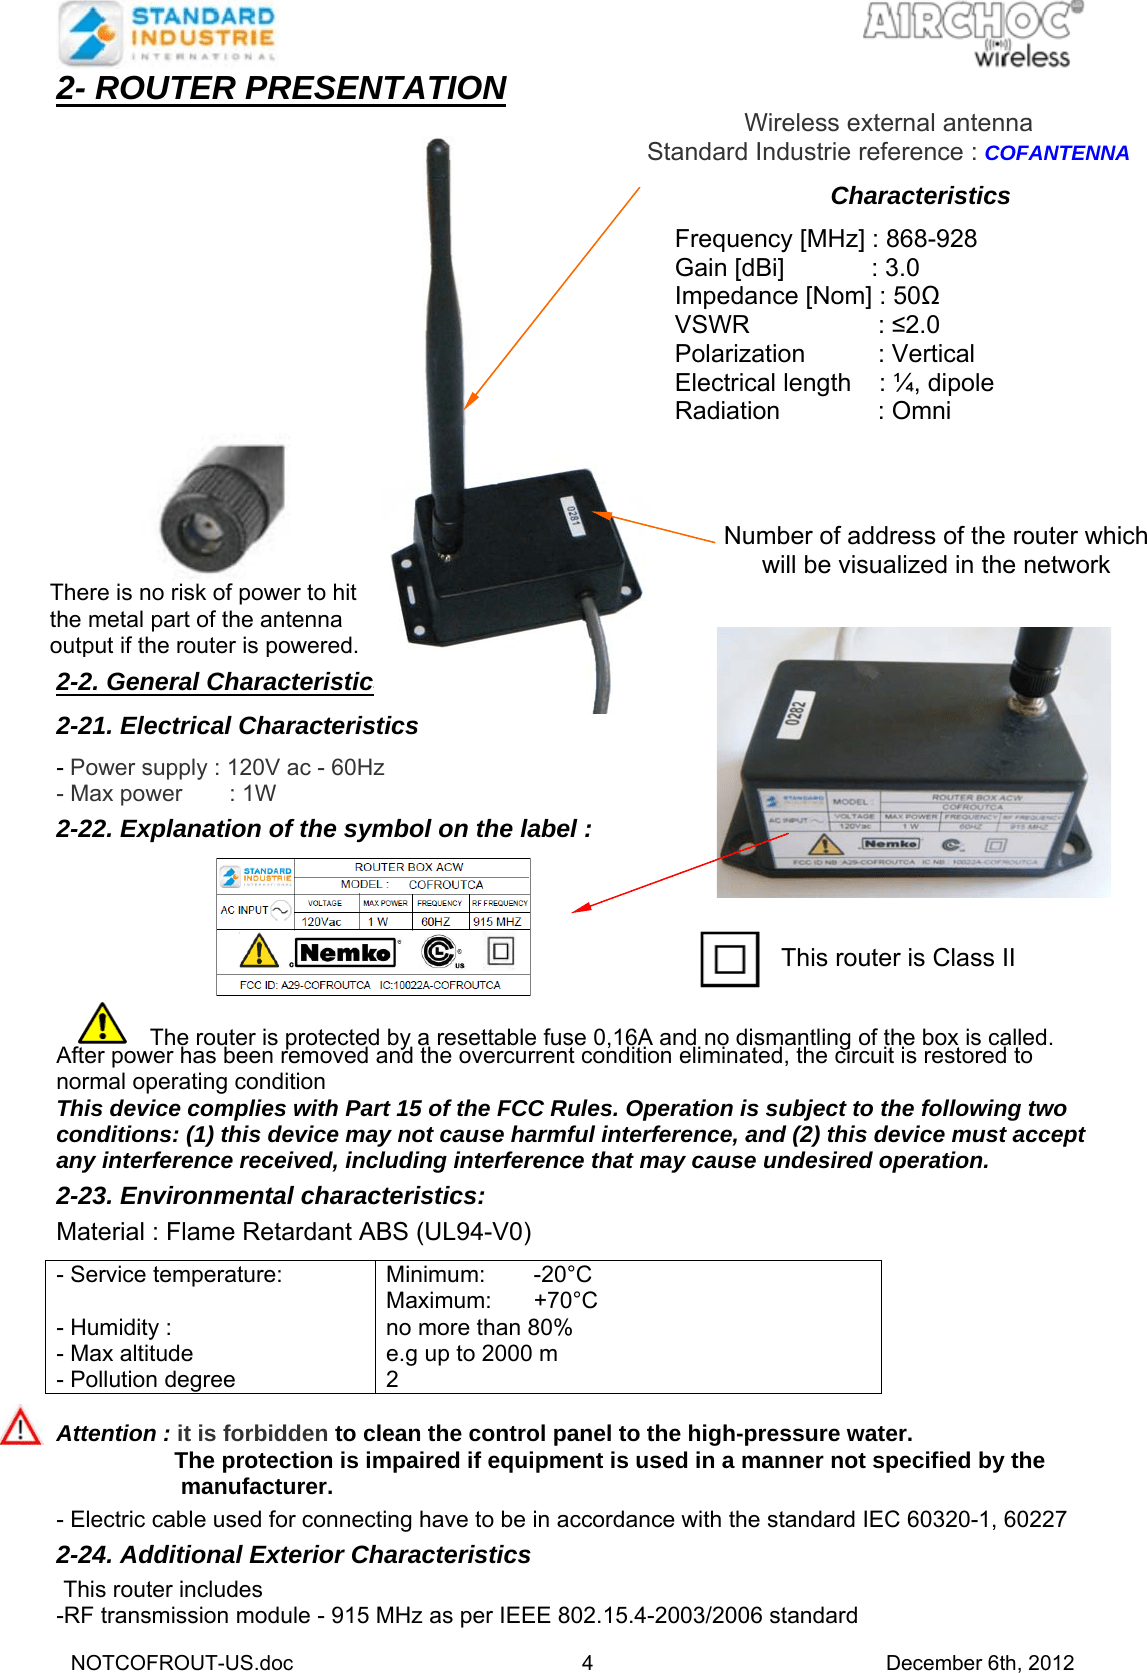 Standard Industrie Cofroutca Router For Airchoc Wireless